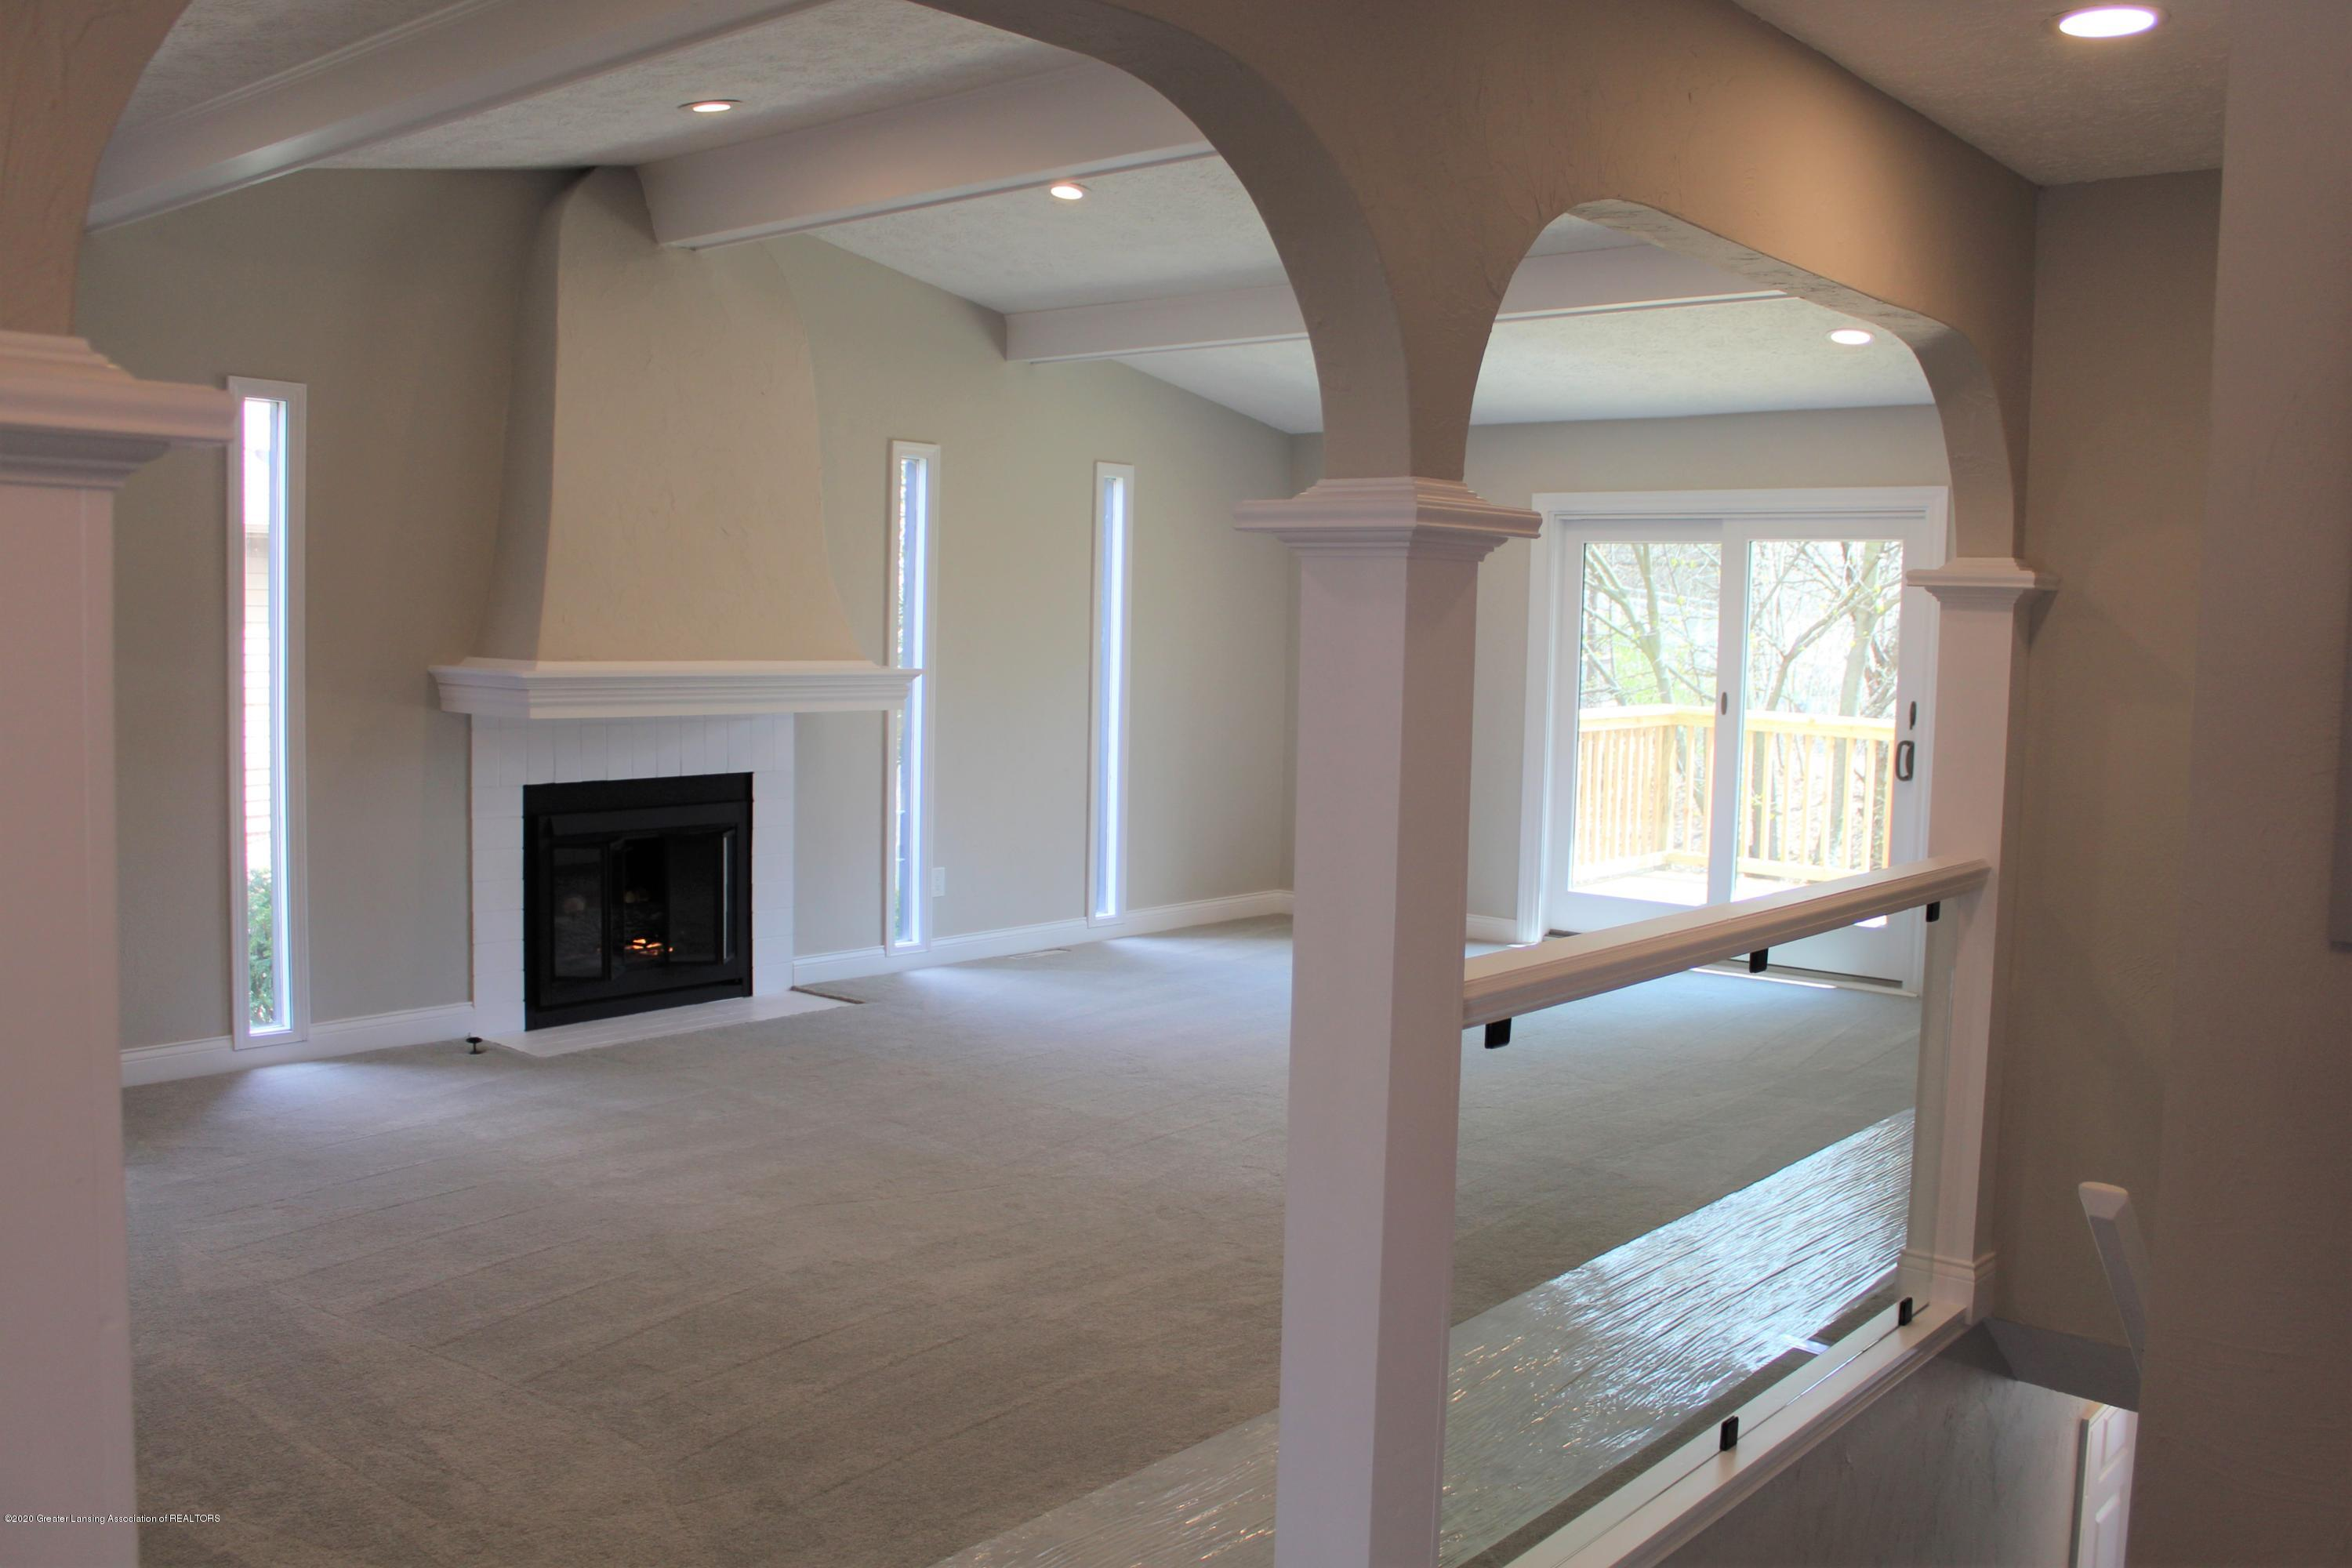 984 Whittier Dr - LIVING ROOM & STAIRS - 20